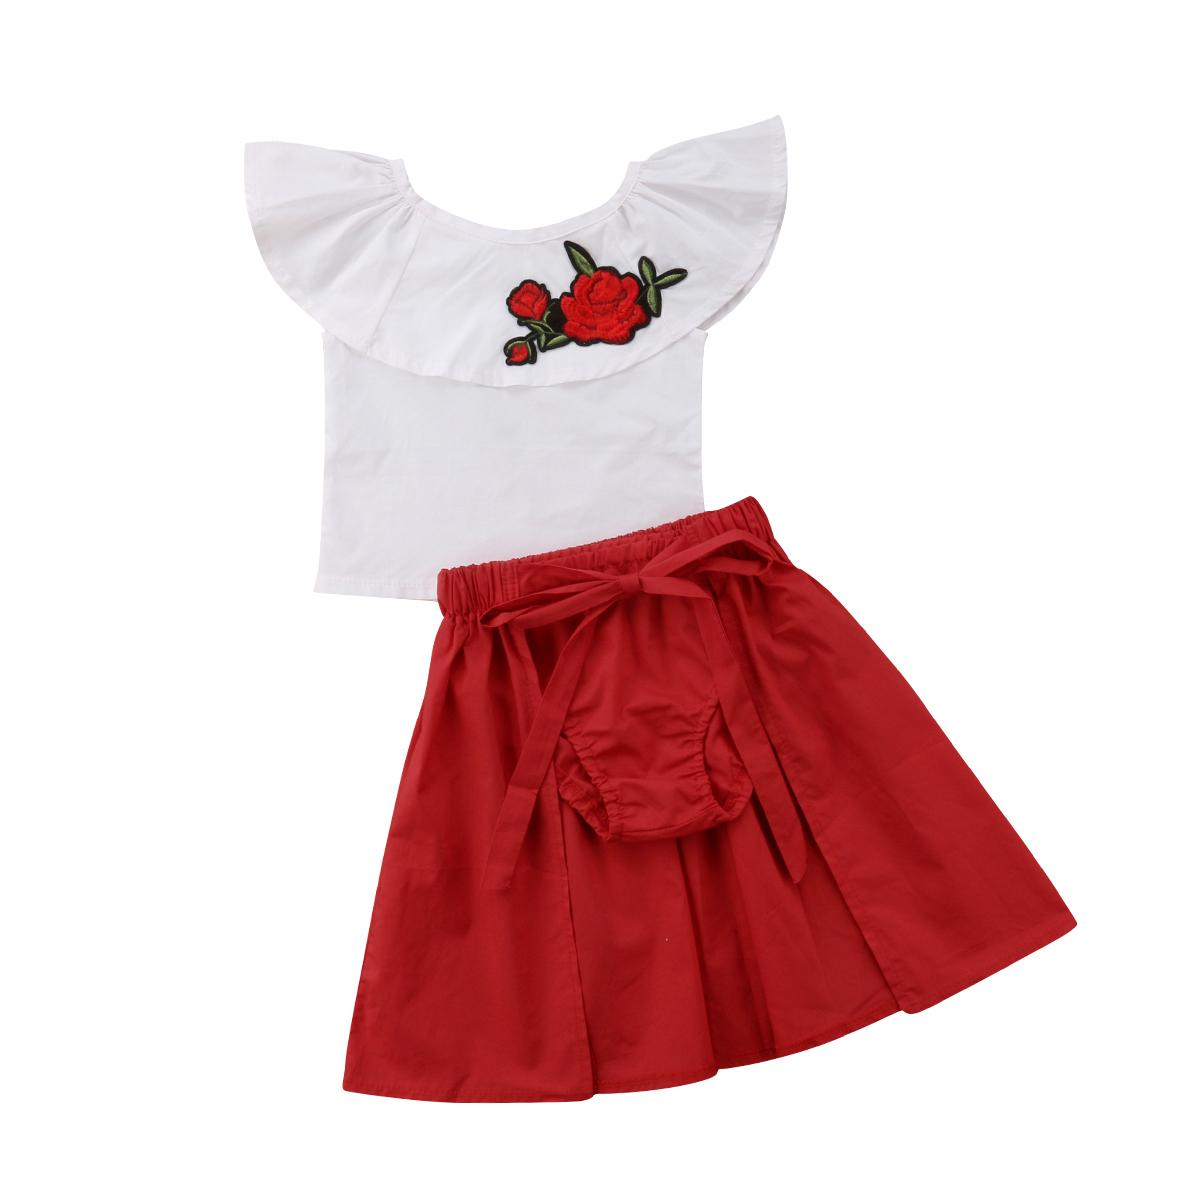 51ba38fd6bd0 Clothes Set Toddler Kid Baby Girl Summer Clothes Embroidery Floral ...